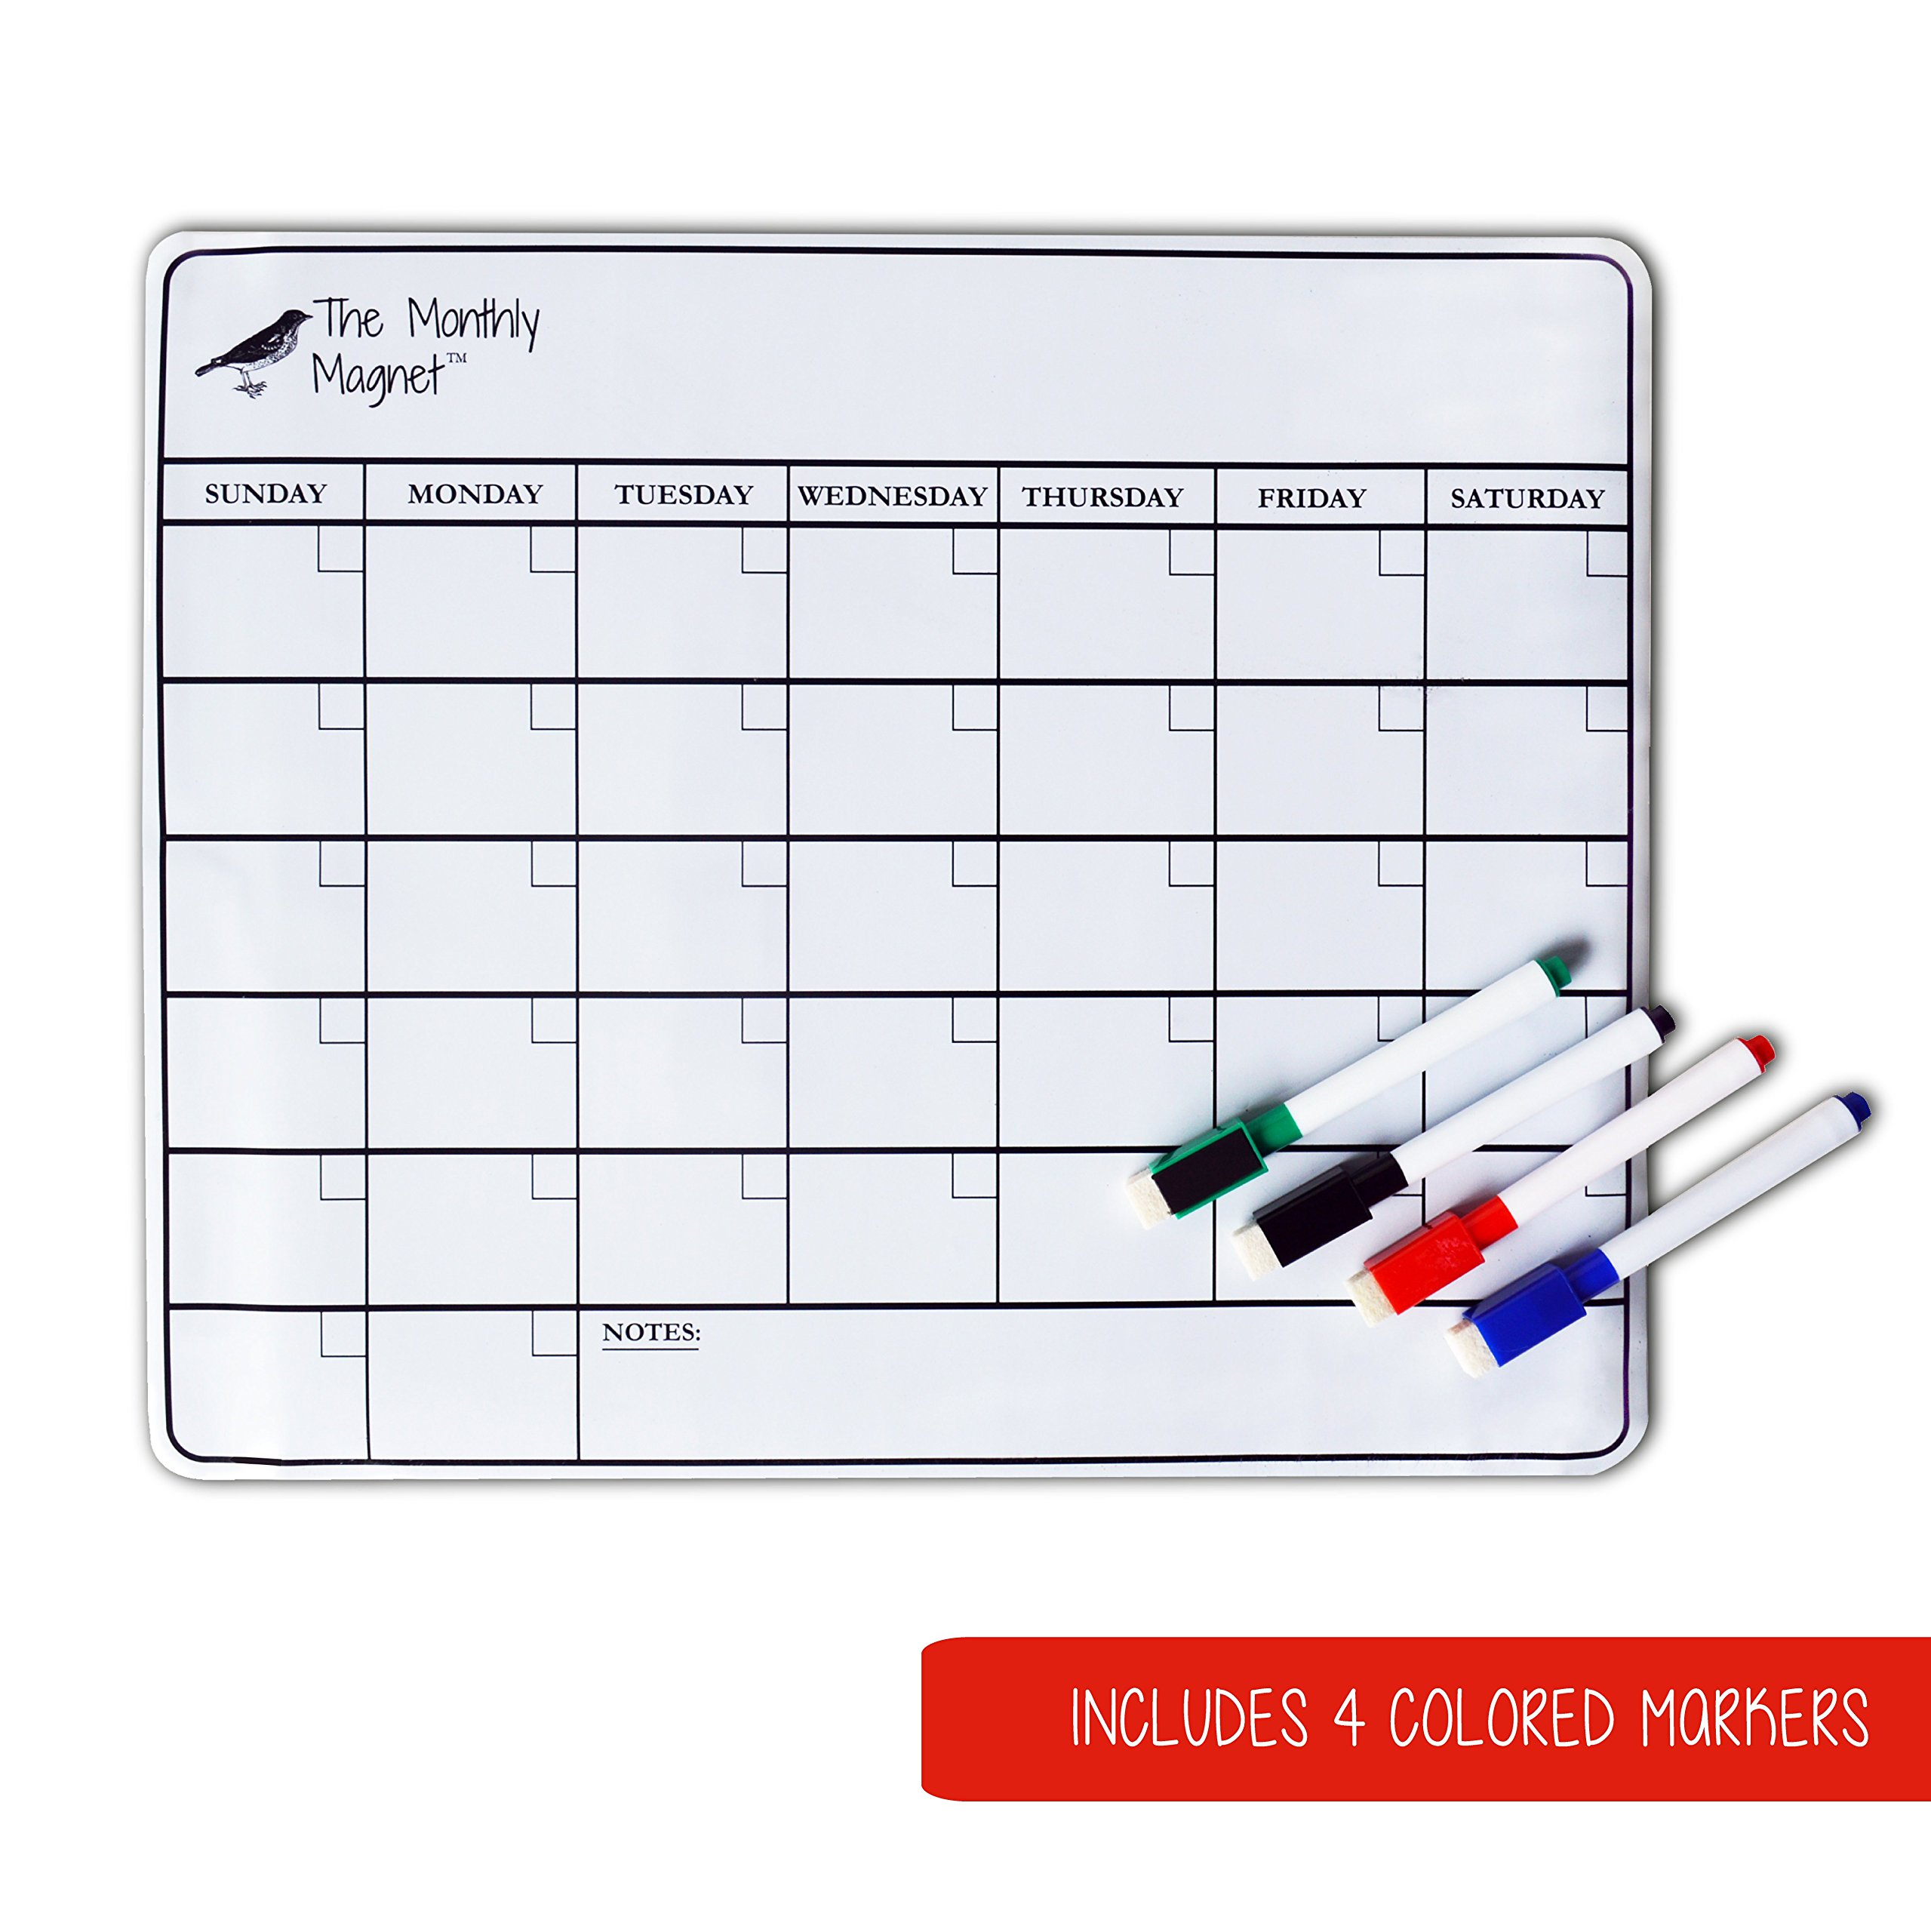 Magnetic Dry Erase Calendar Set by SoHo Home & Kitchen - Includes 4 Color Whiteboard Markers - 11 x 14 Inches - Perfect Size for Refrigerators